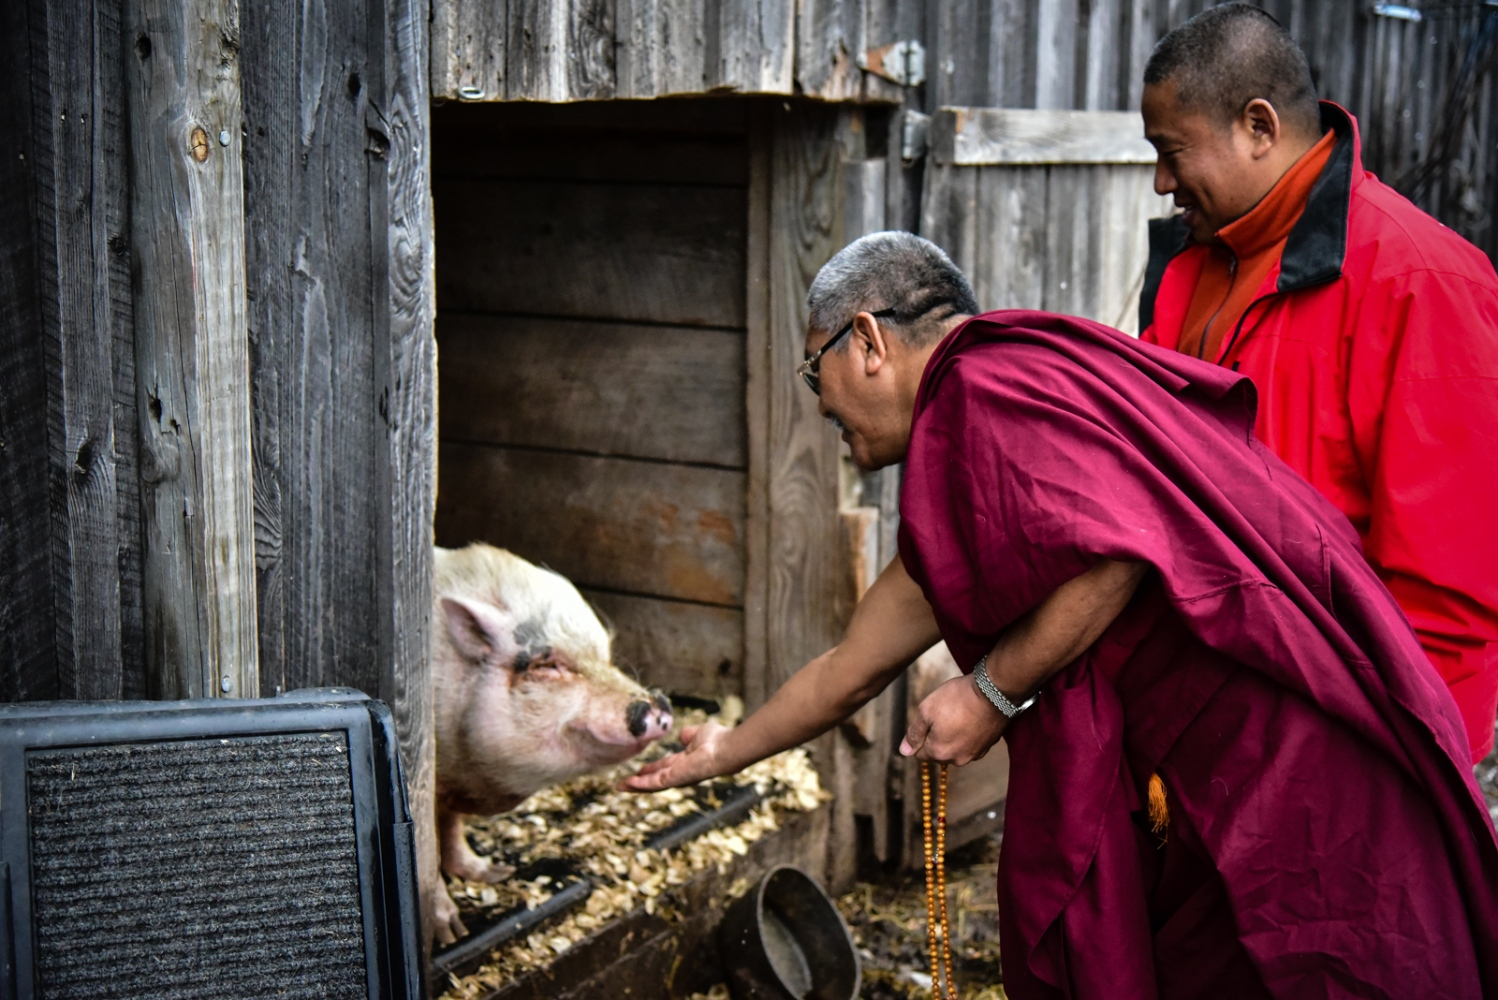 Blessing of a rescued pig by visiting Tibetan monks, Indraloka Sanctuary in Pennsylvania